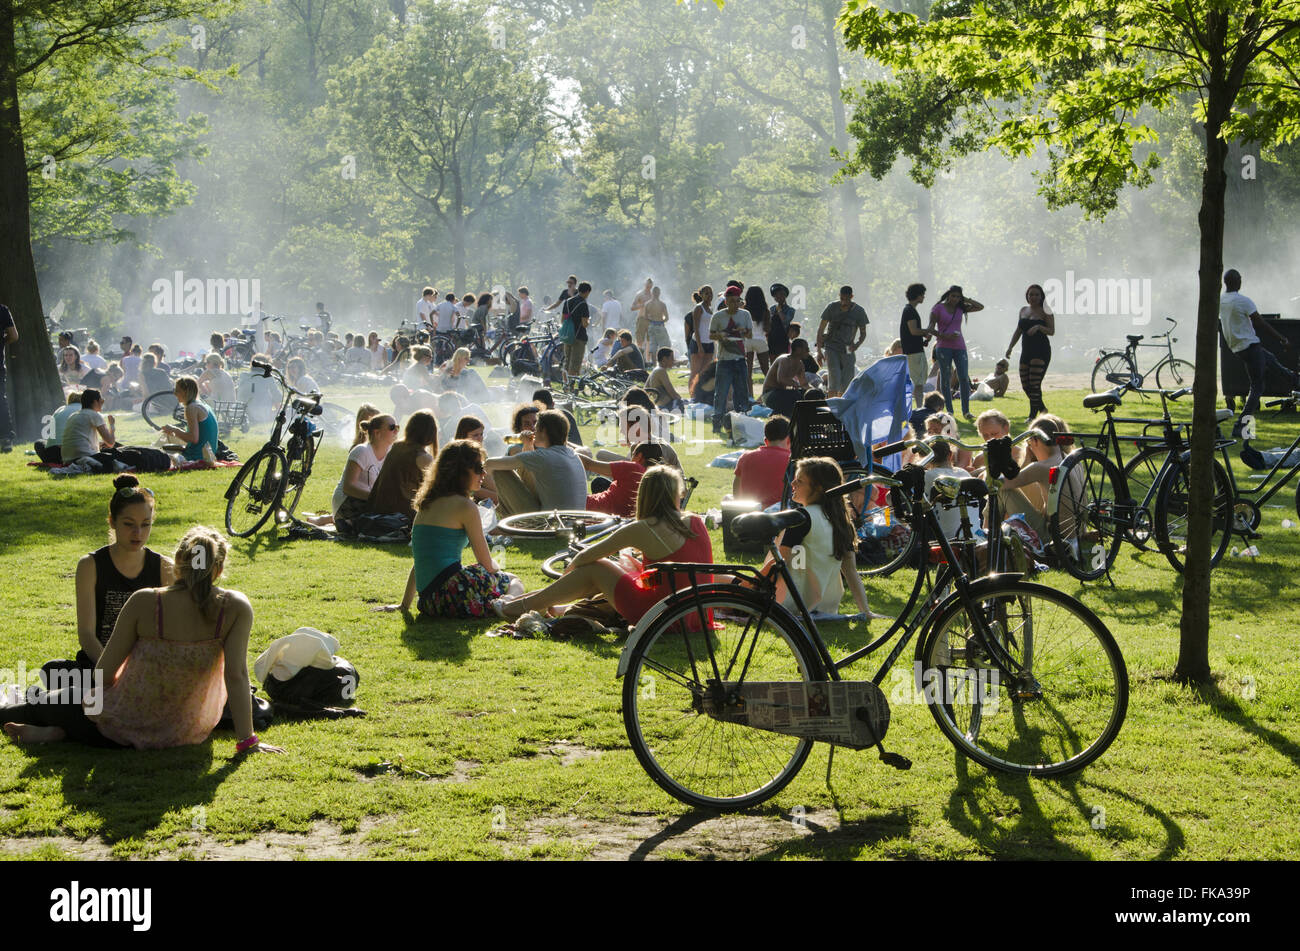 Population in the Vondelpark on a hot day - southern city - Stock Image